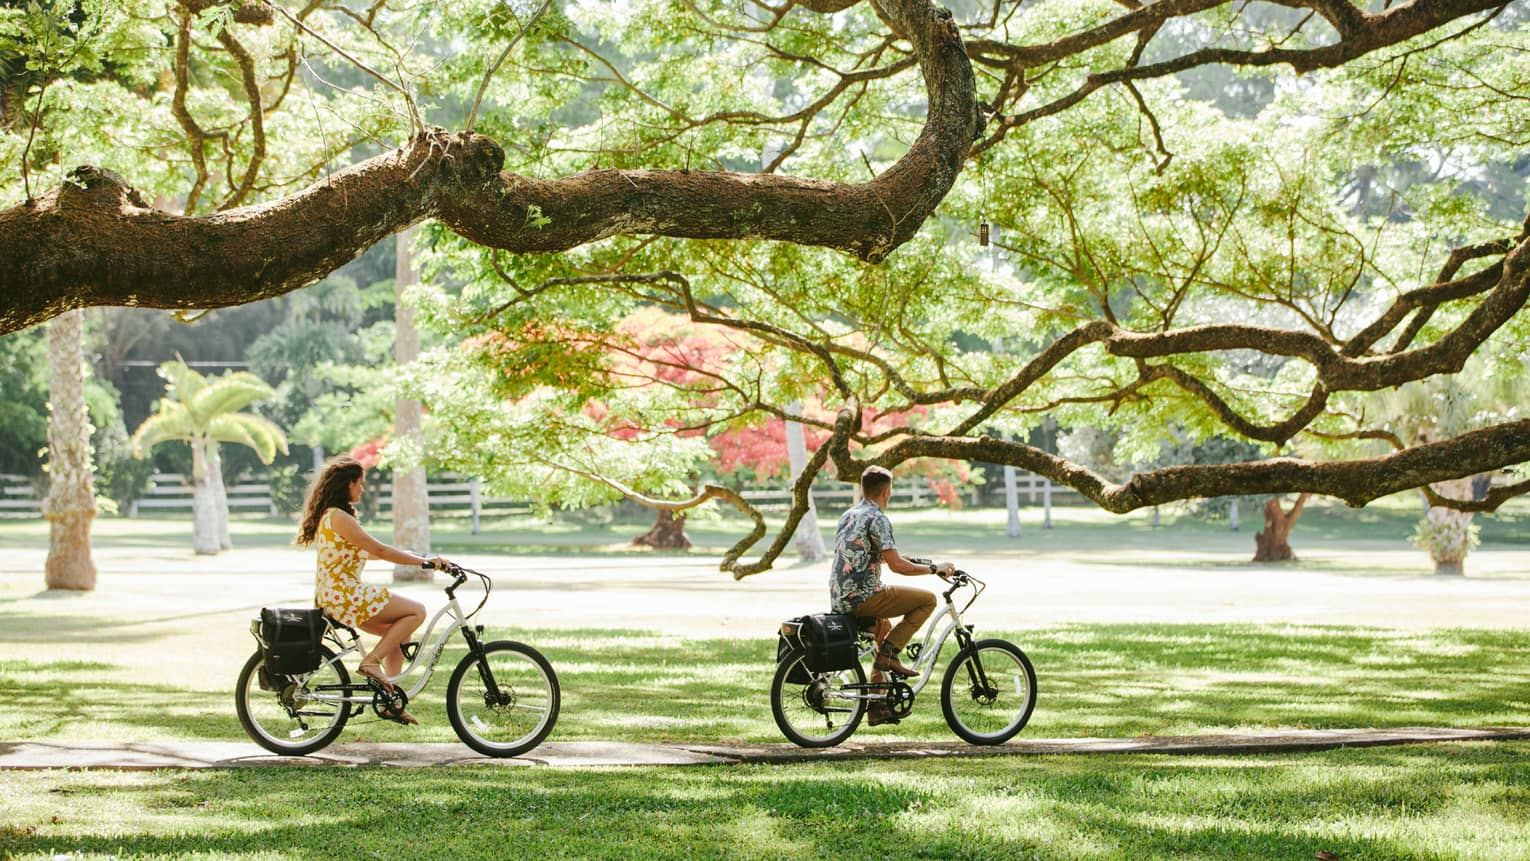 Man and woman ride bicycles through a grove of trees